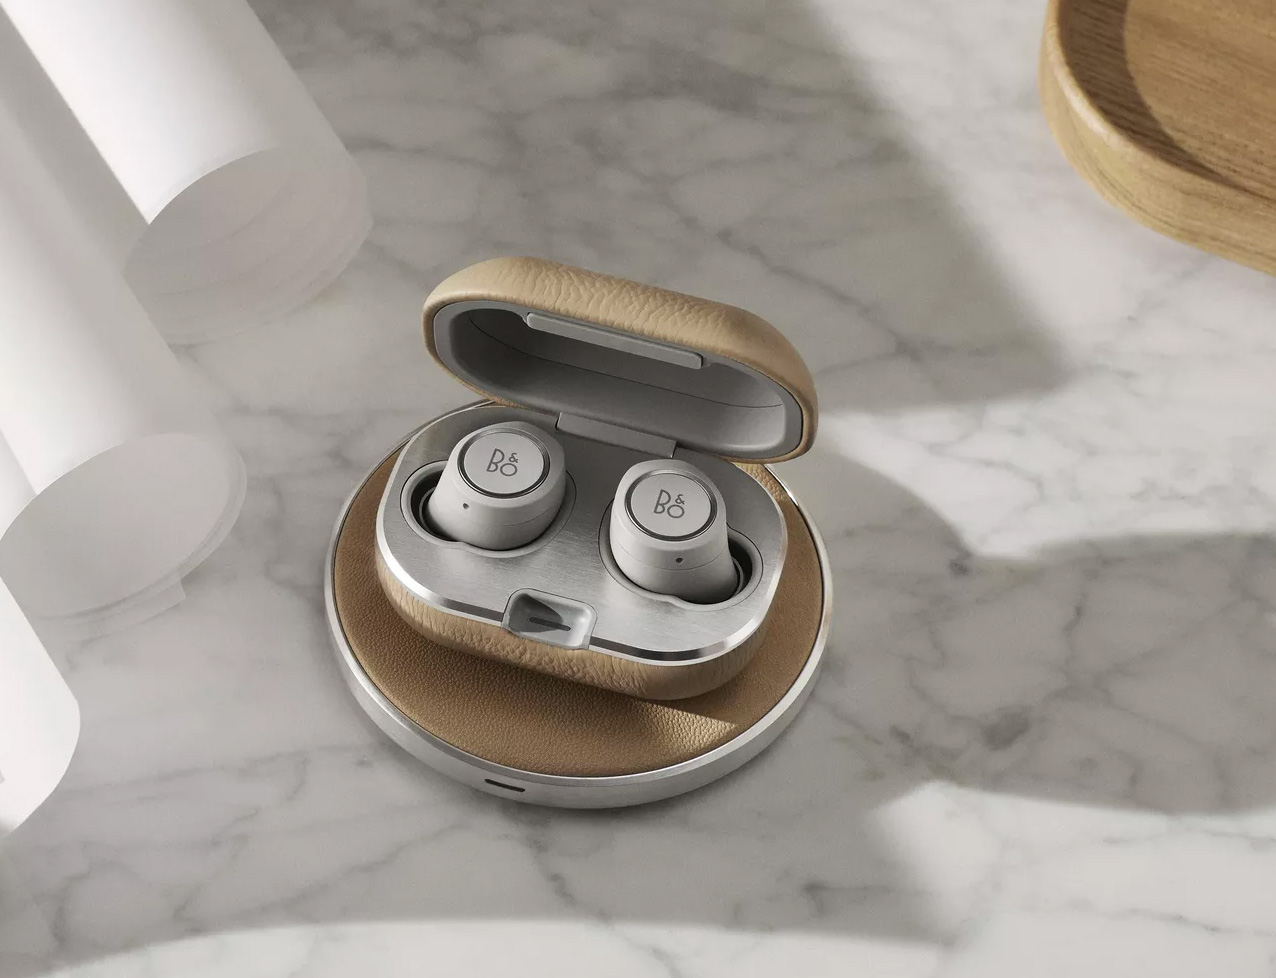 Bang & Olufsen's Beoplay E8 Earbuds Got a Fast-Charge Upgrade at werd.com